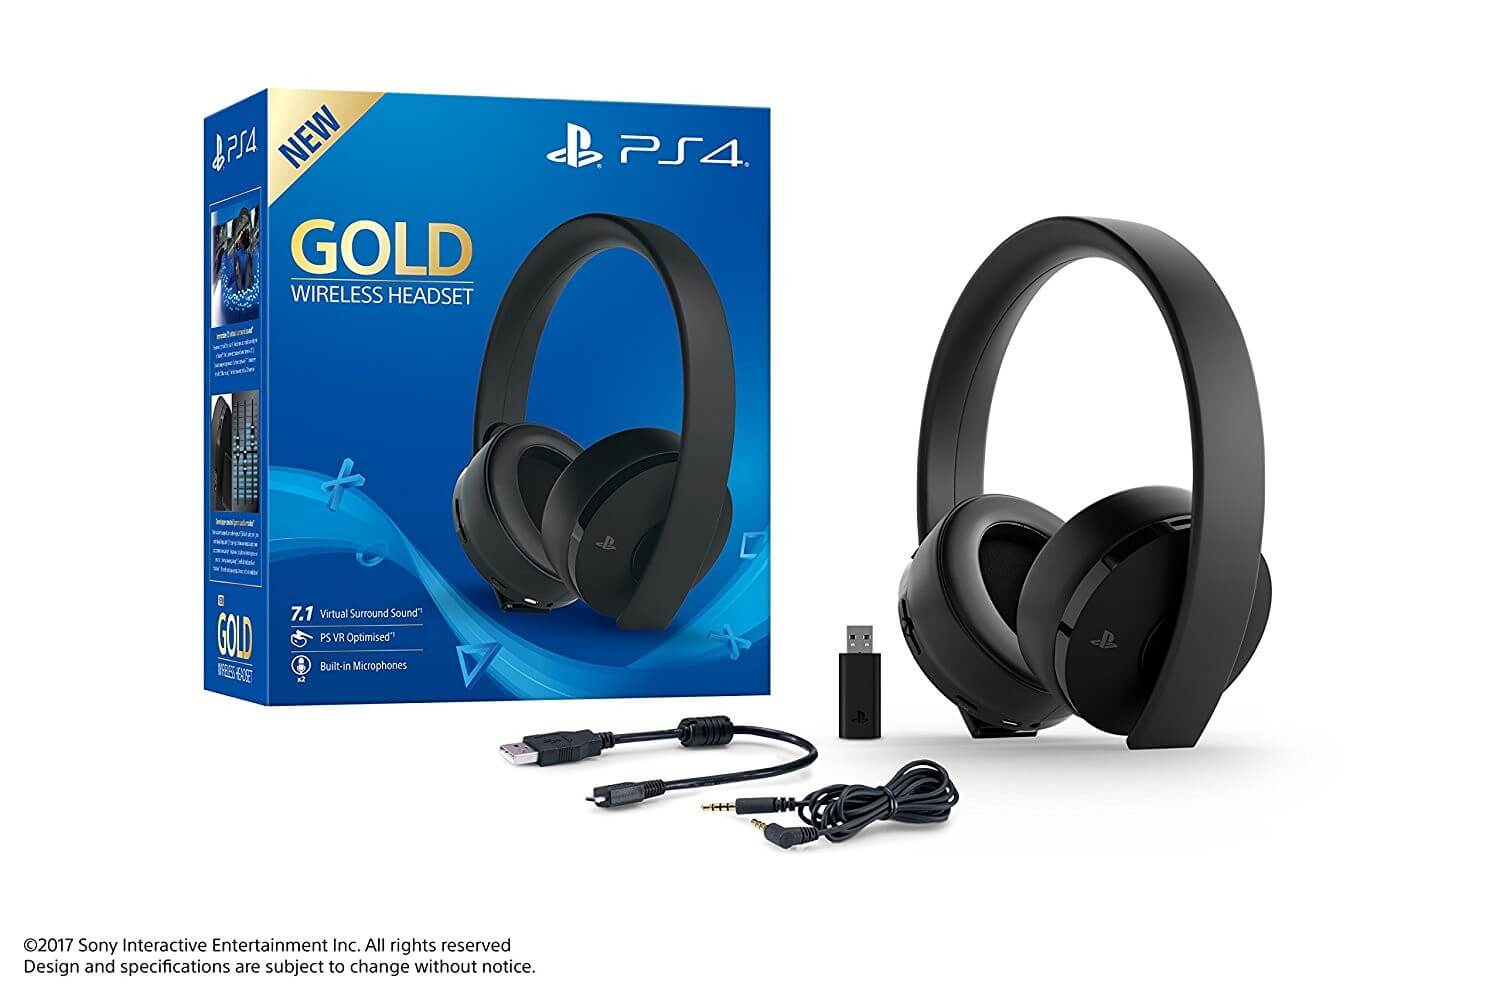 Sony PlayStation 4 Gold Wireless 7.1 Headset Black